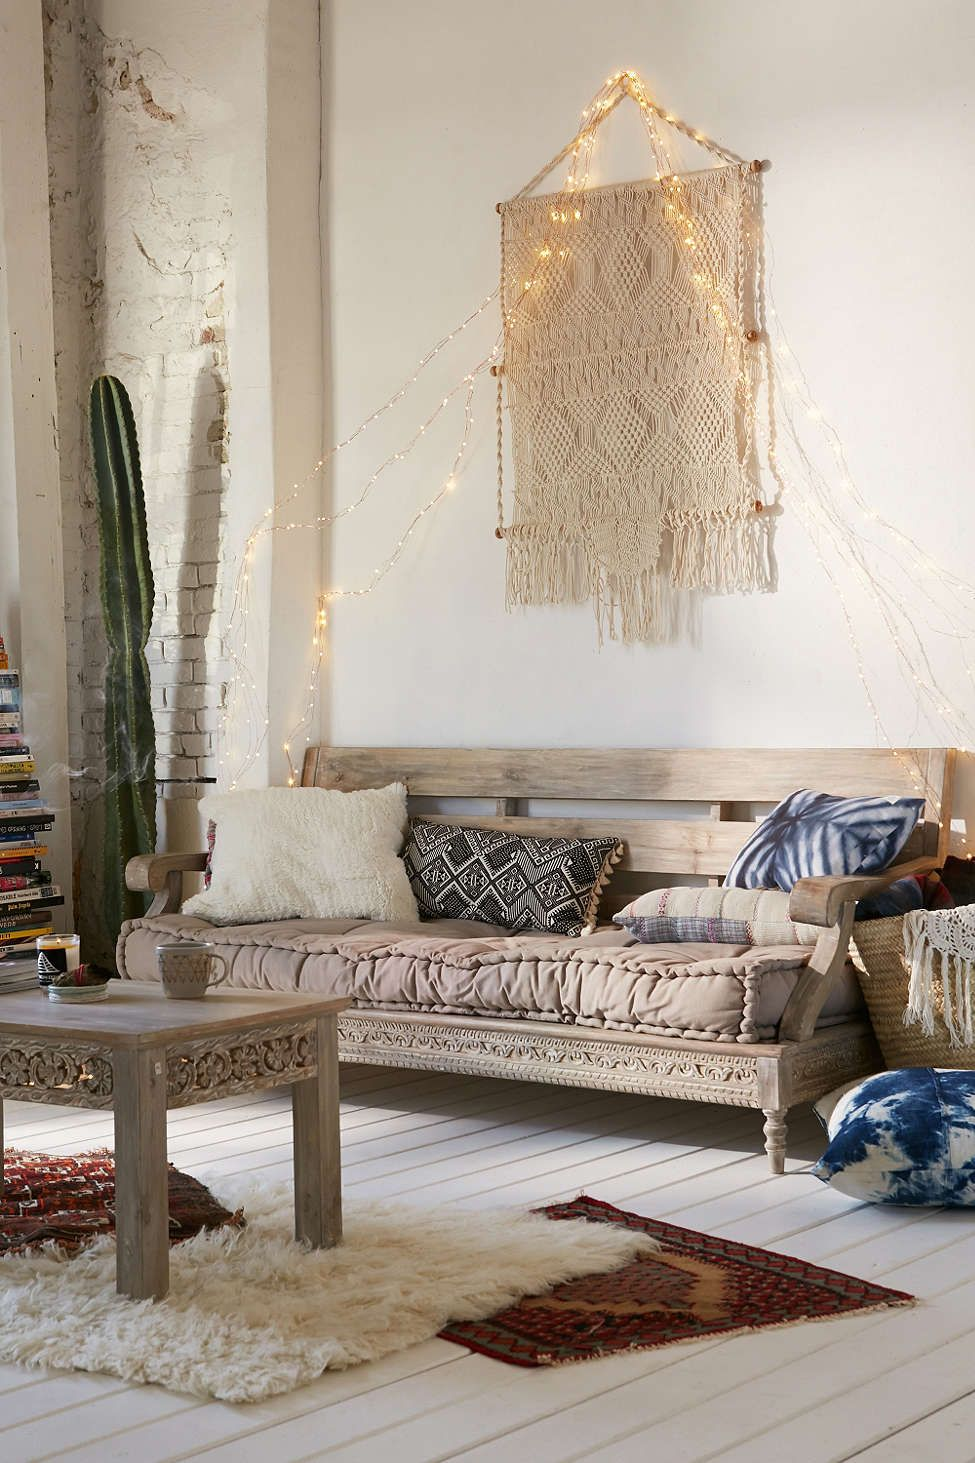 Hopper Daybed | Pinterest | Magical thinking, Daybed and Urban ...